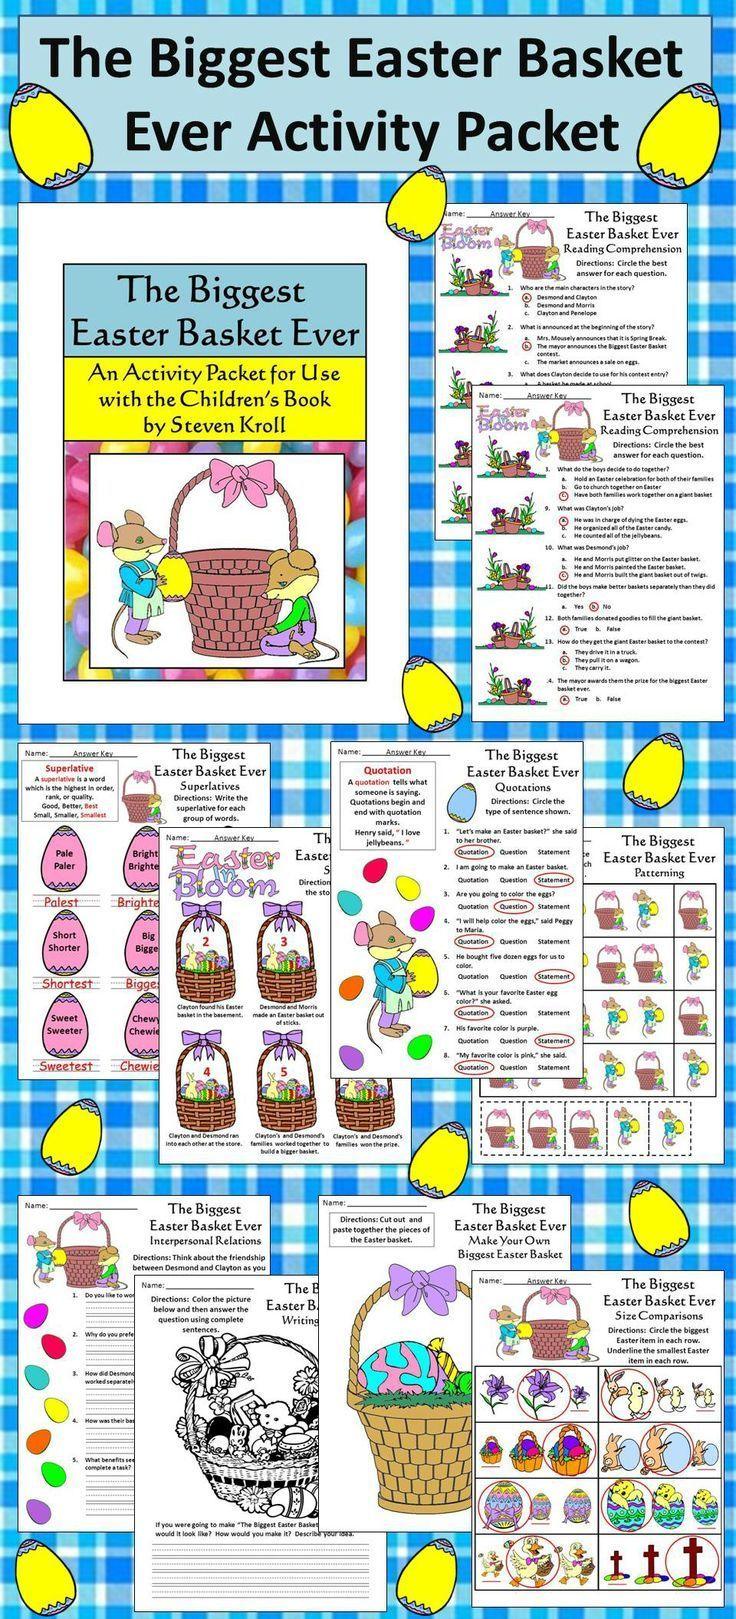 The Biggest Easter Basket Ever Activity Packet: This colorful Easter reading activity packet complements the children's book, The Biggest Easter Basket Ever, by Steven Kroll.  Contents include: * Reading Comprehension Quiz * Sequencing Worksheet * Biggest